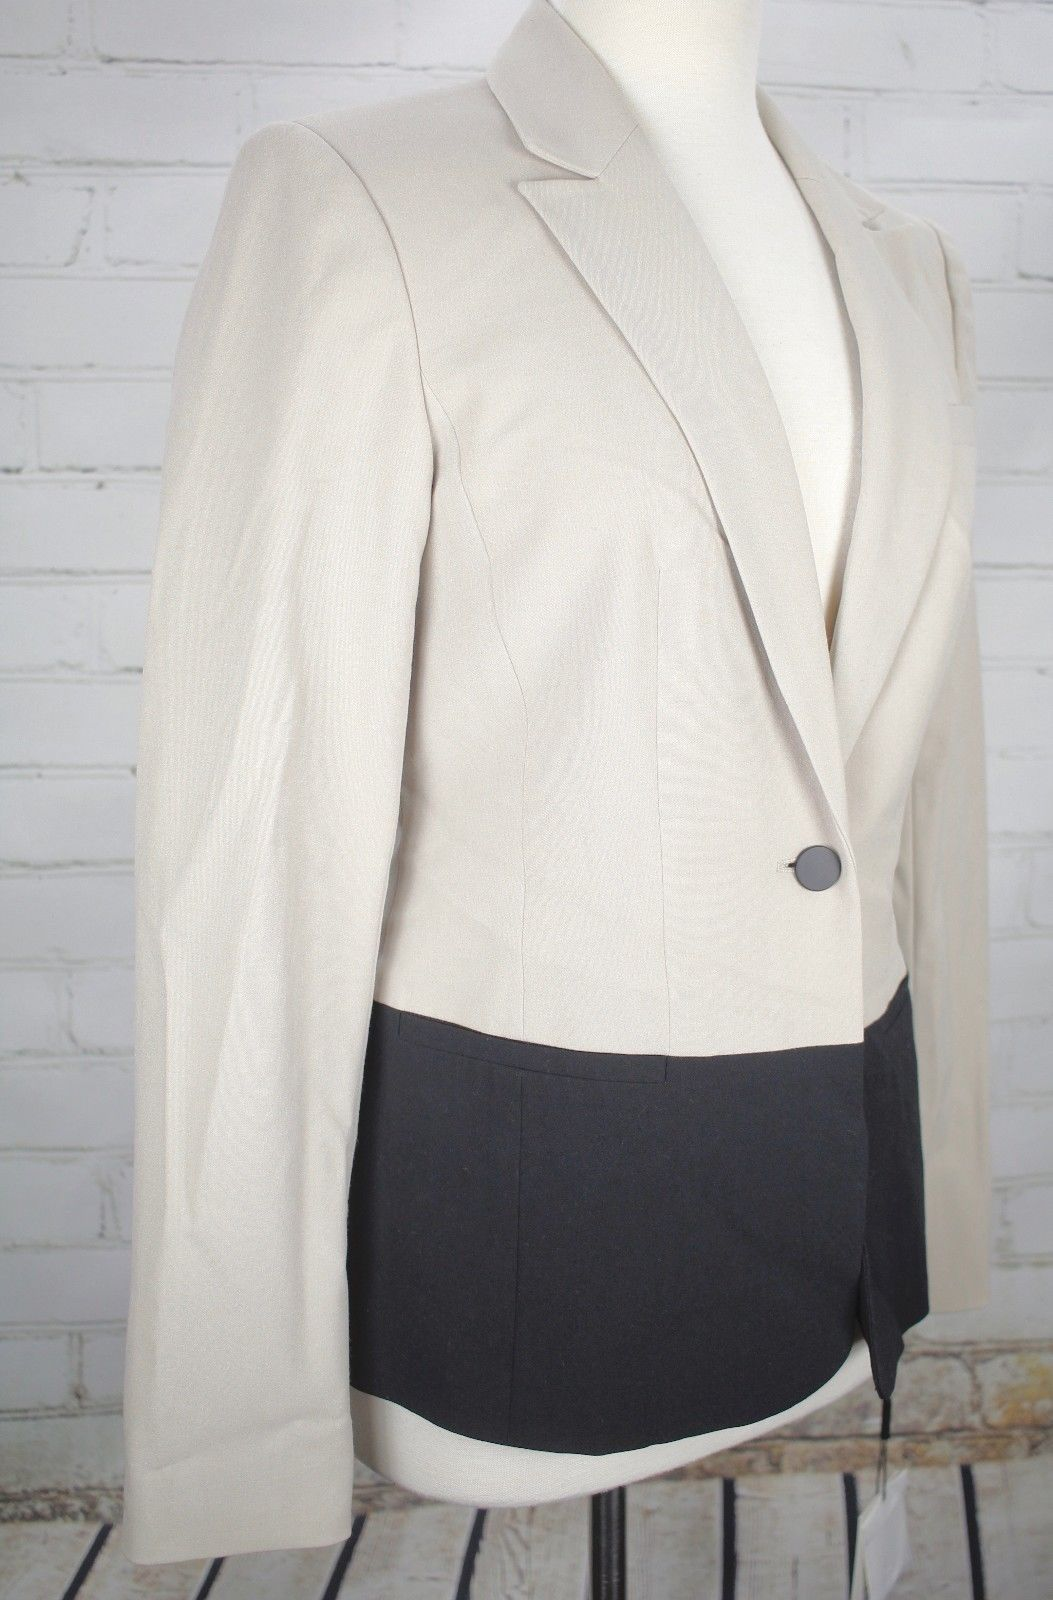 NEW CALVIN KLEIN  Suit Jacket Career Blazer Women's Size 4 Coat Khaki Black